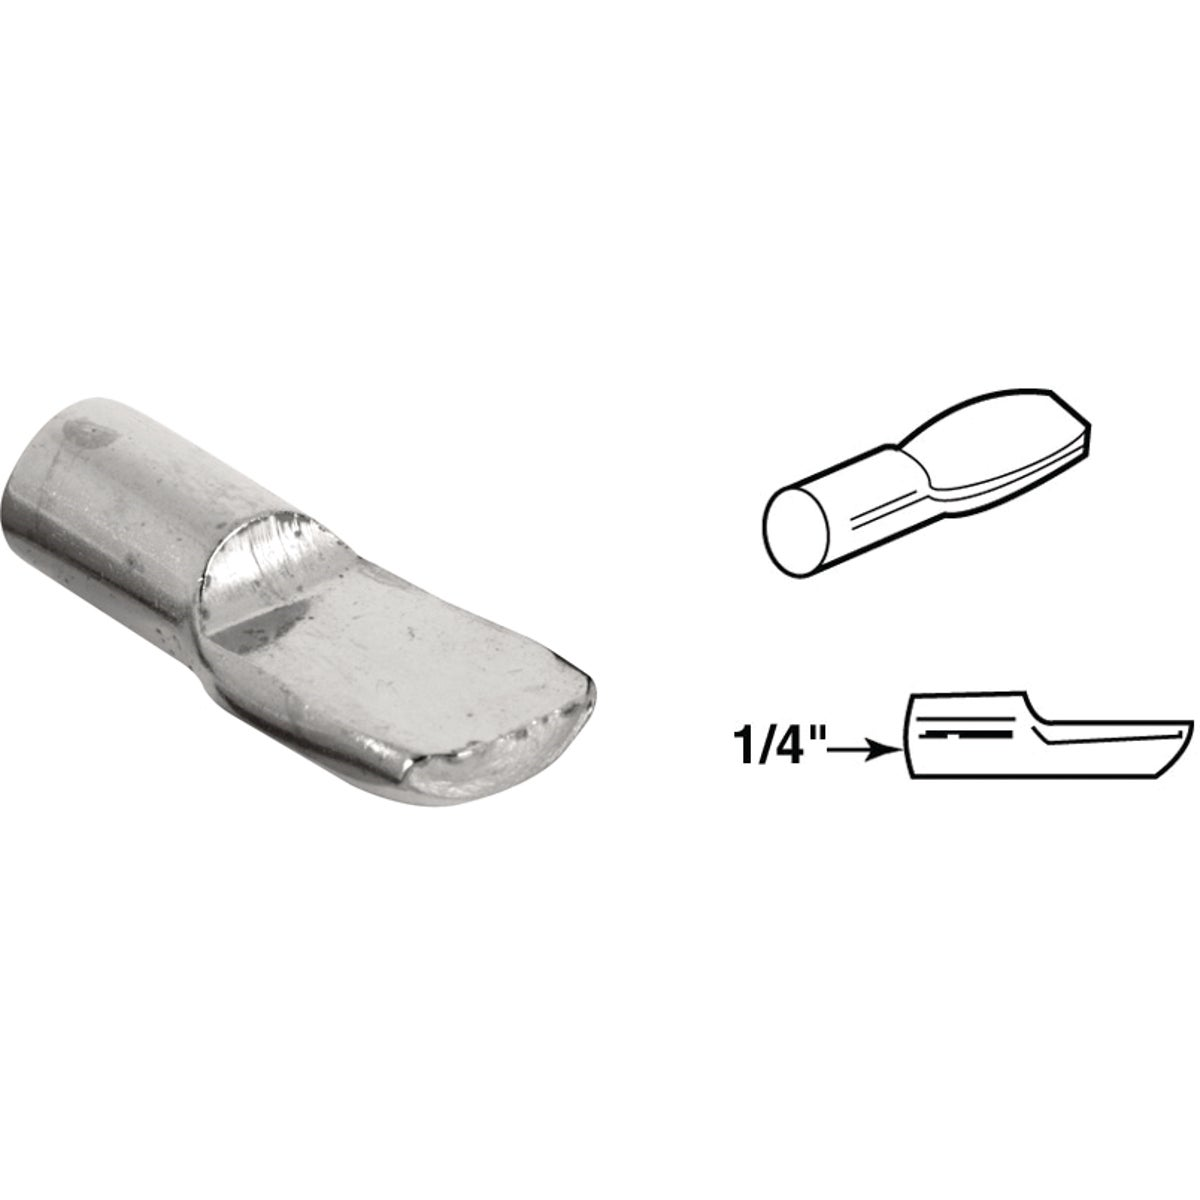 NICKEL SHELF PEG - 243363 by Prime Line Products